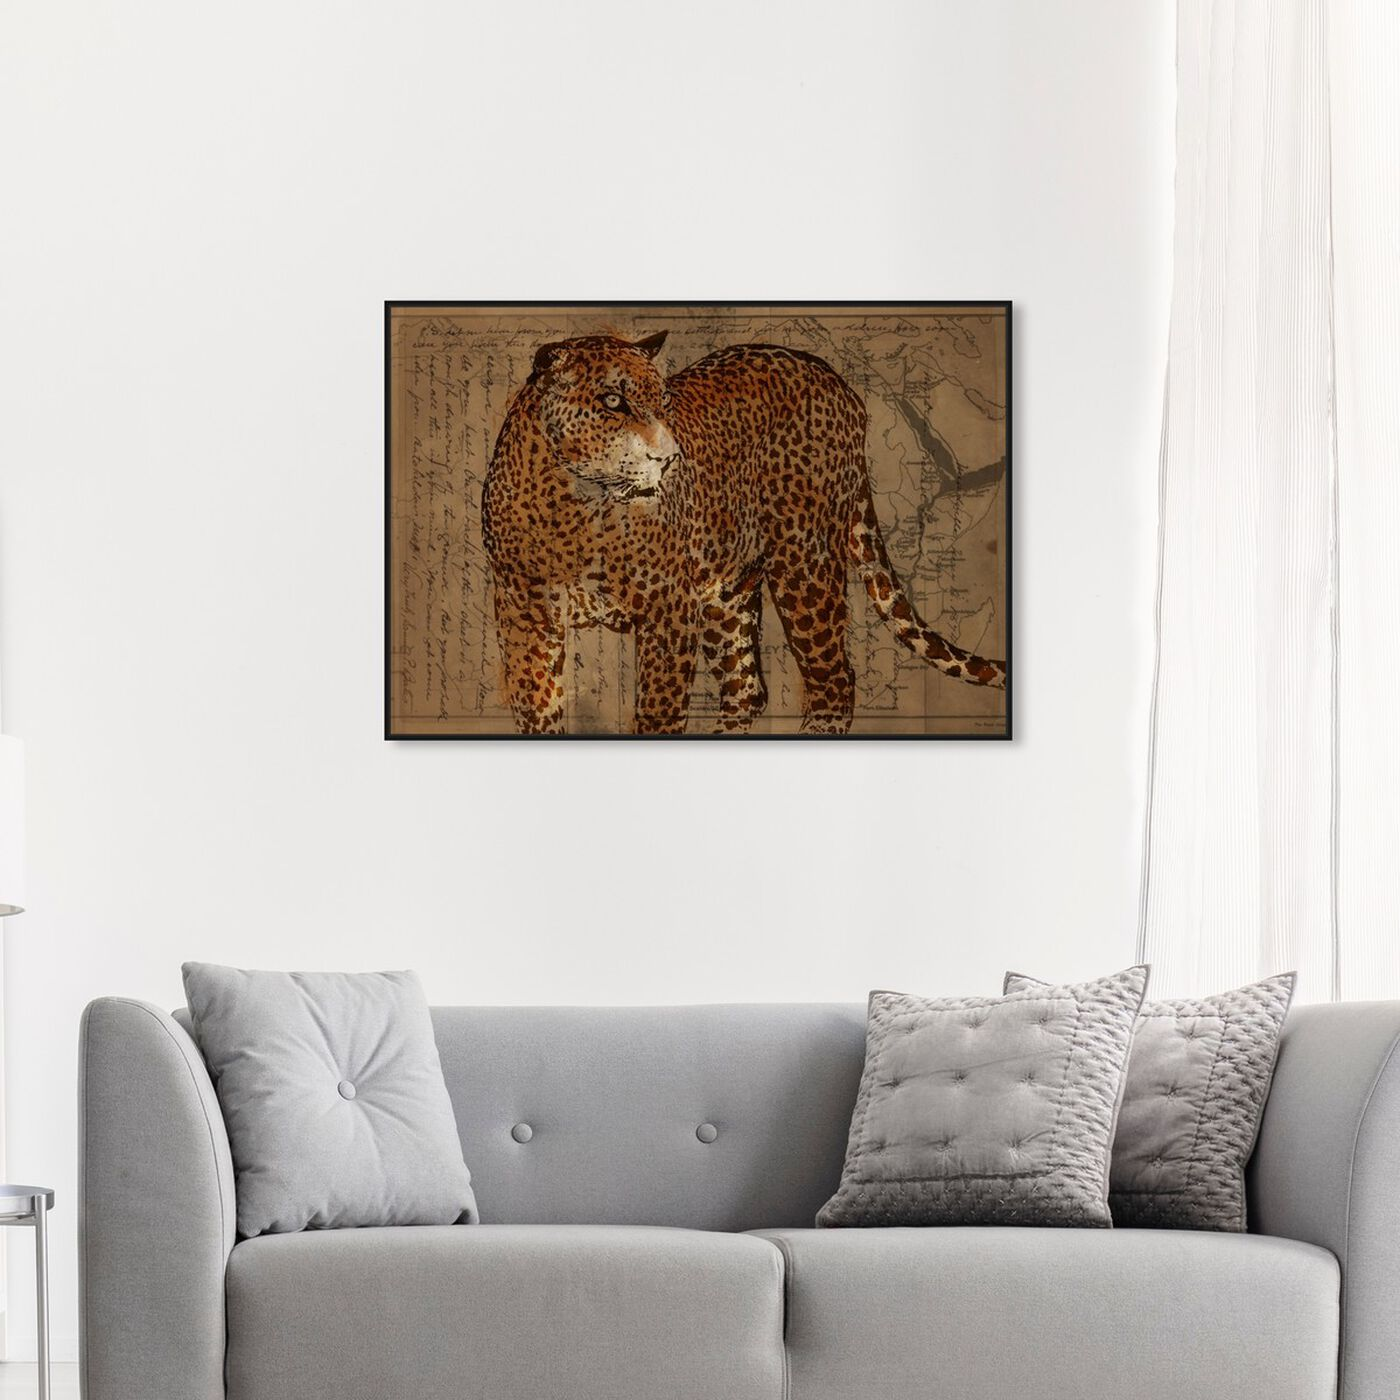 Hanging view of Hunter featuring animals and felines art.